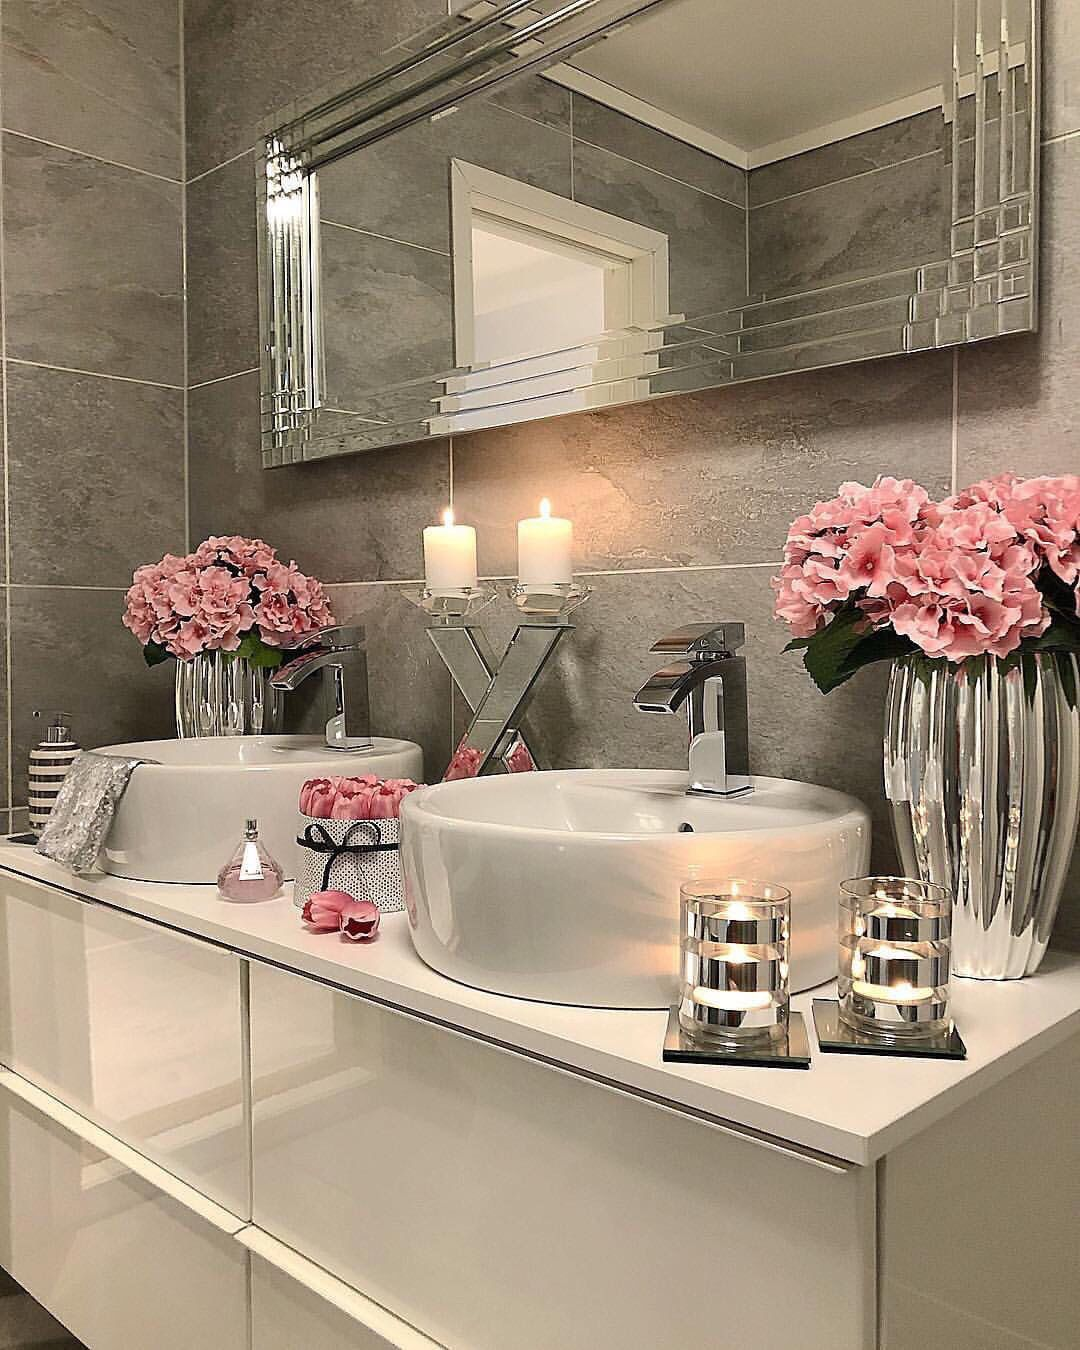 If youre weary of walking into your out date bathroom and dream  change weve got decorating ideas for you that are reasonable easy to also luxury home decor homes rh pinterest